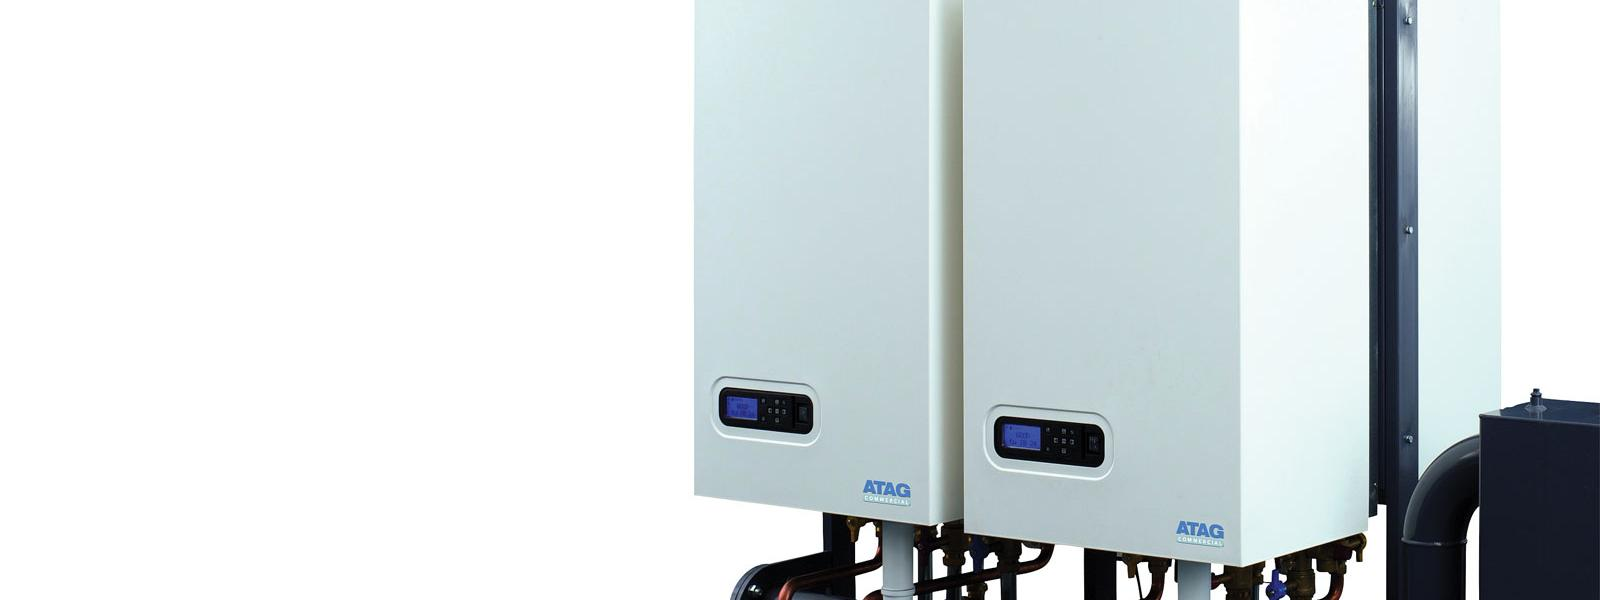 ATAG Commercial Reports Excellent Sales Performance For XL Series